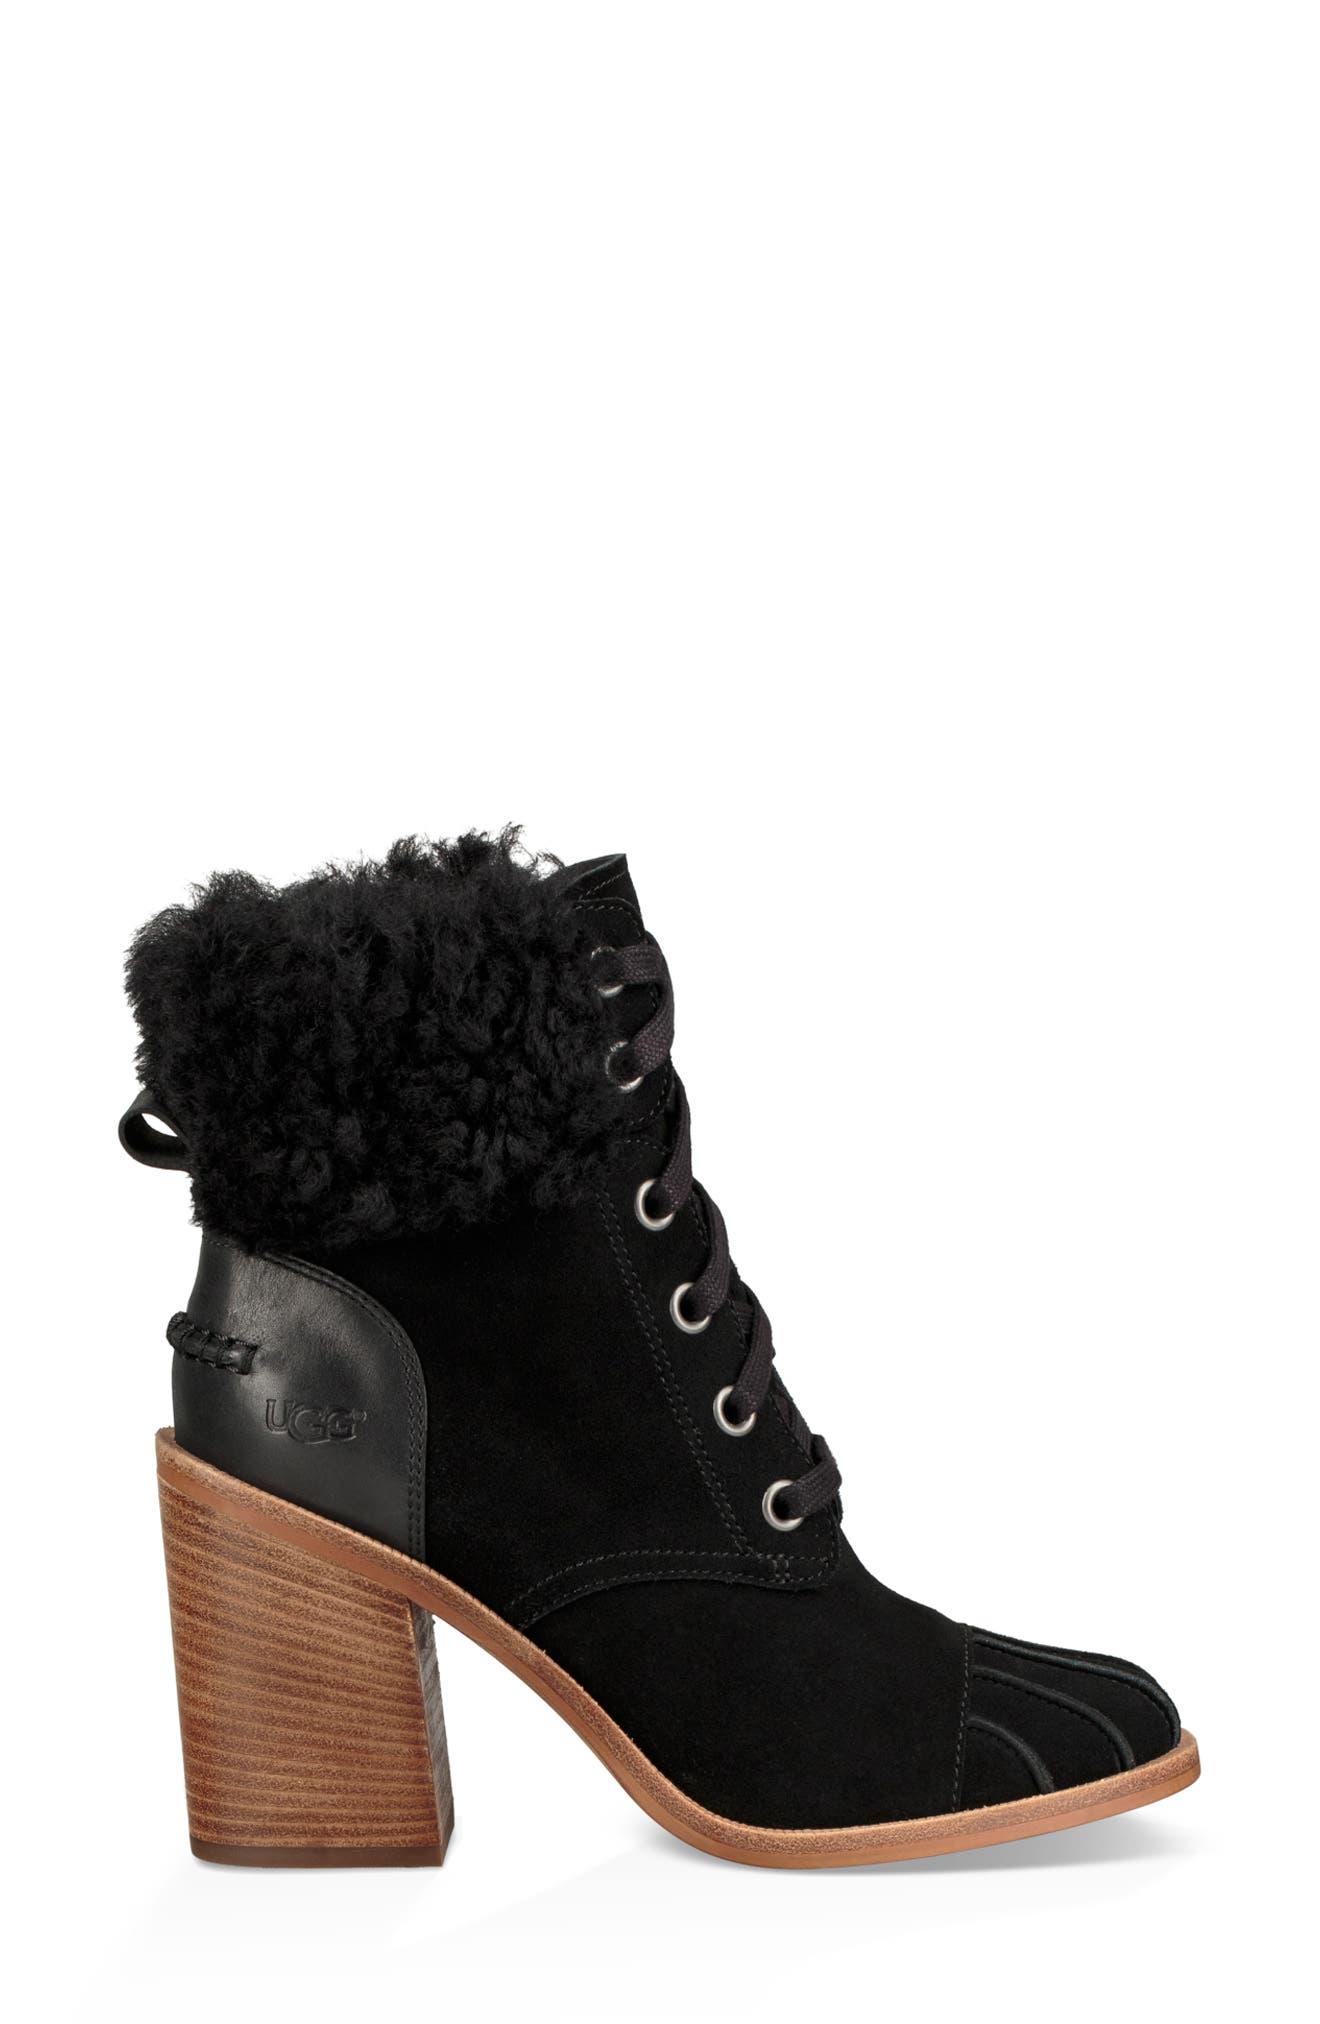 Jaxon Cuff Bootie,                             Alternate thumbnail 3, color,                             BLACK